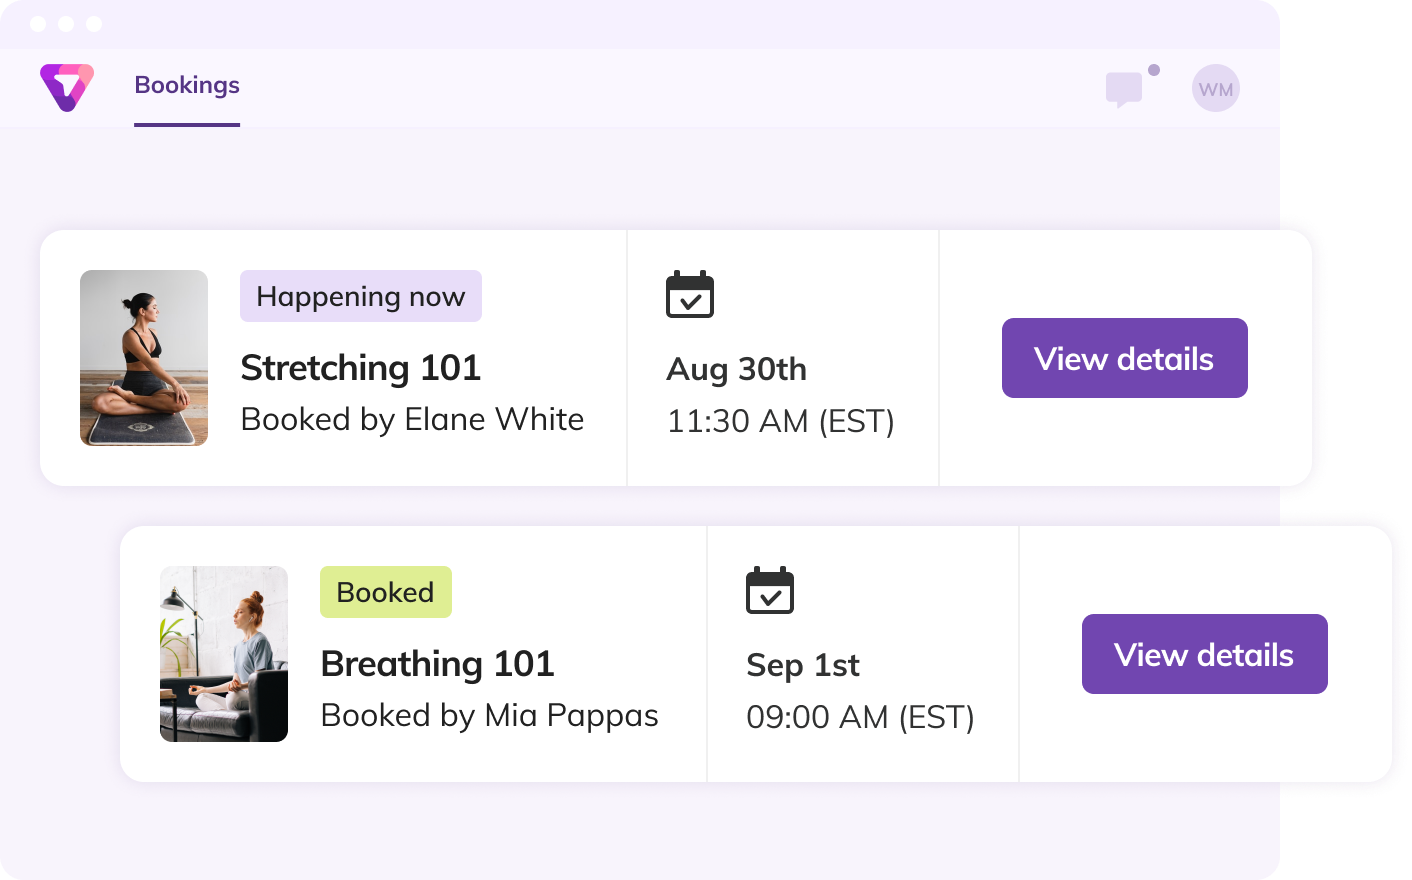 A booking dashboard with upcoming services on the Thriver platform